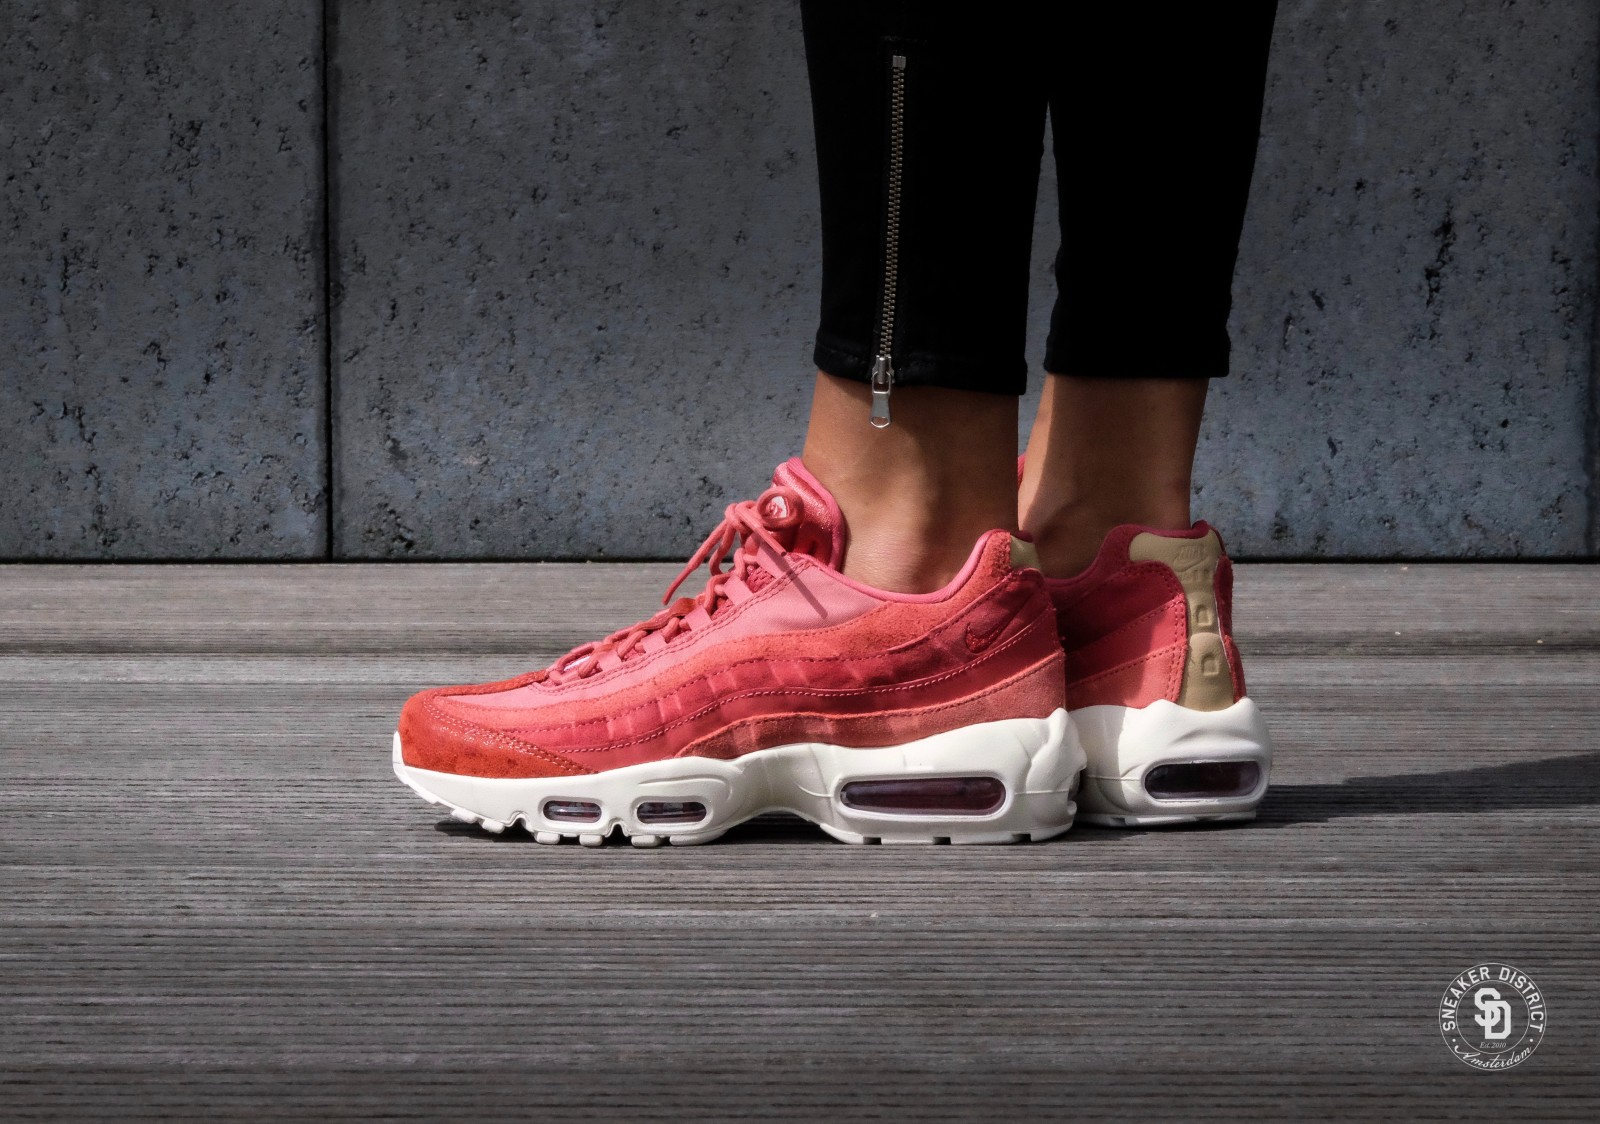 Nike WMNS Air Max 95 PRM Light RedwoodSail Mushroom 807443 801